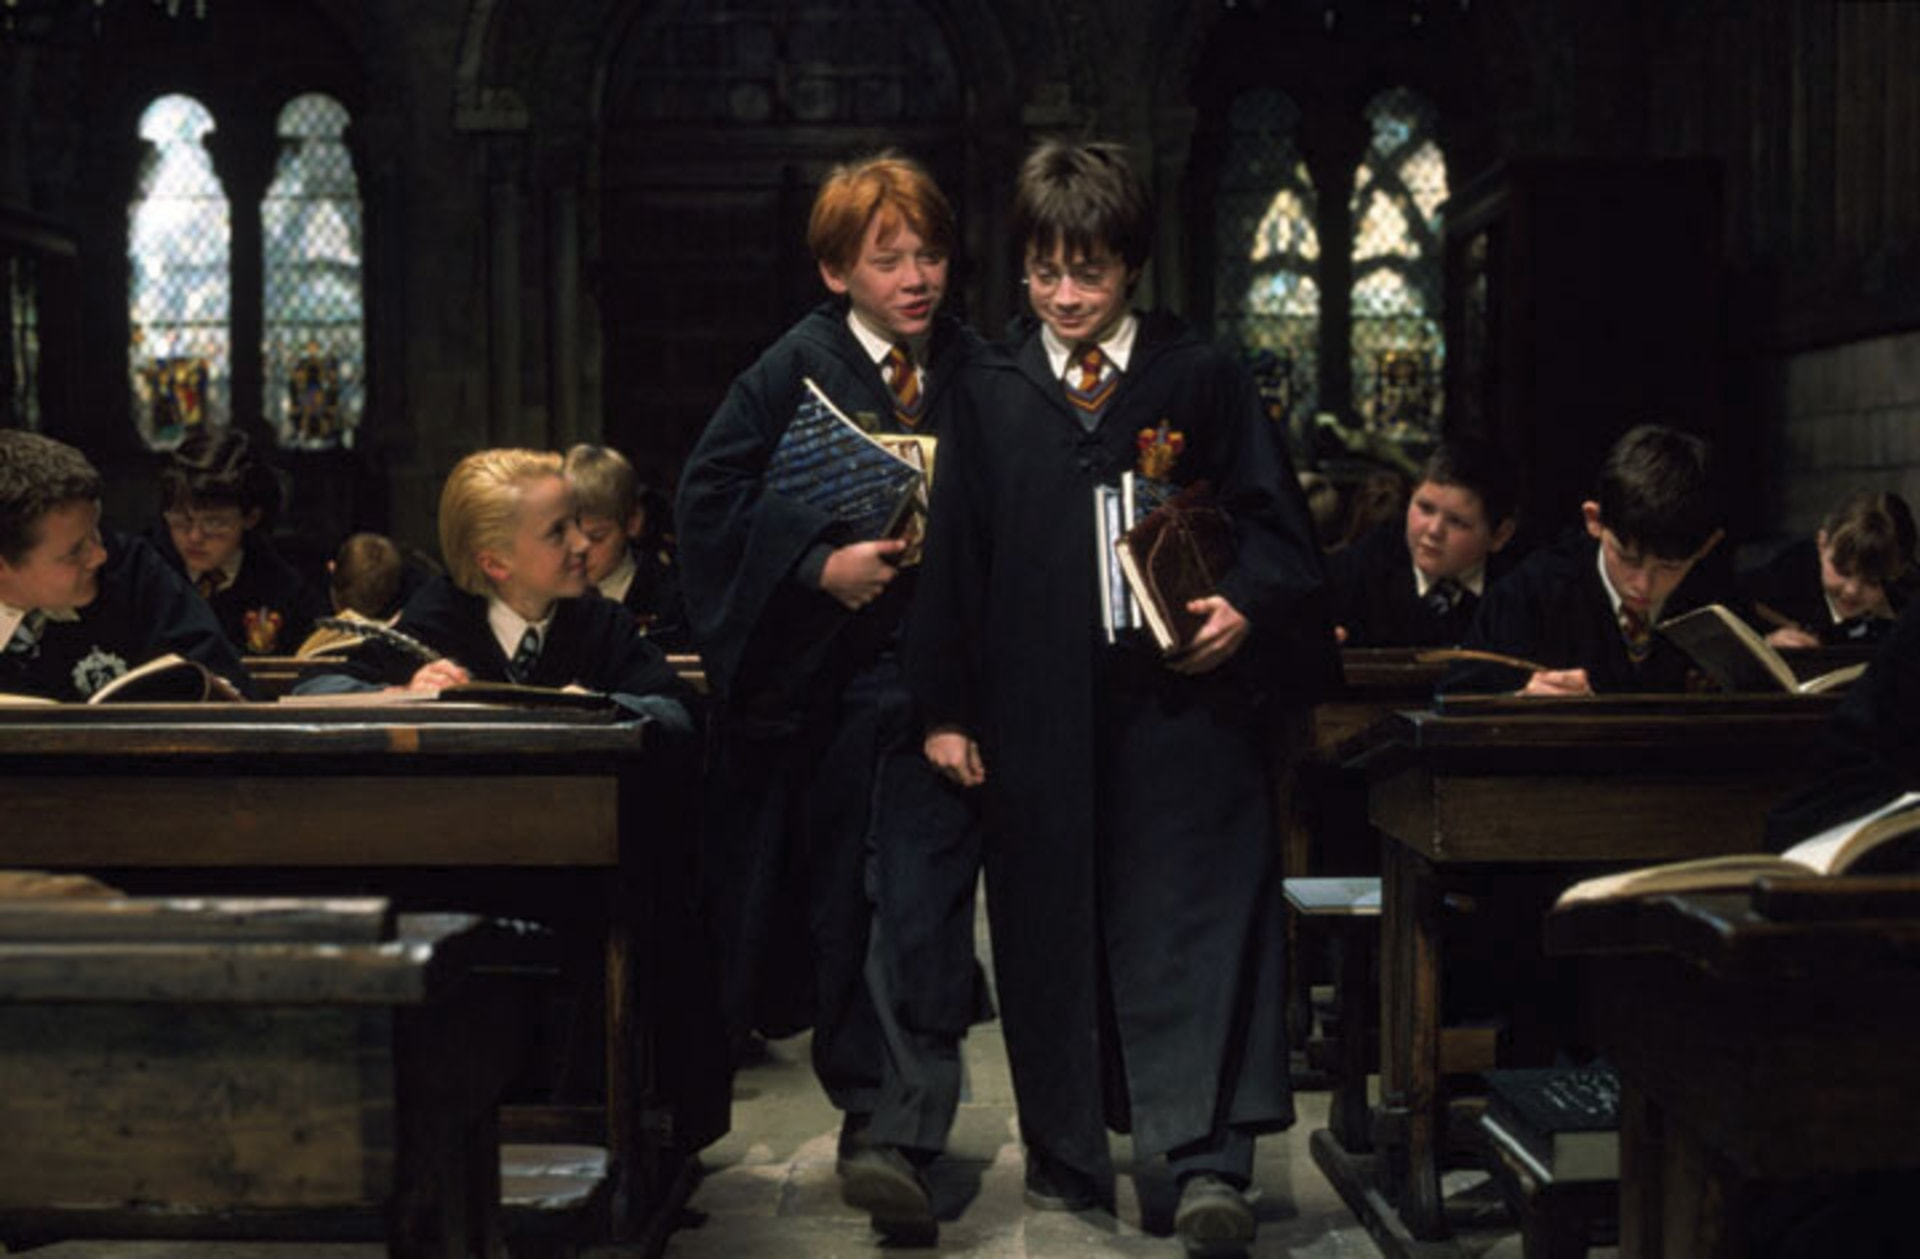 Harry Potter and the Philosopher's Stone - Image 10